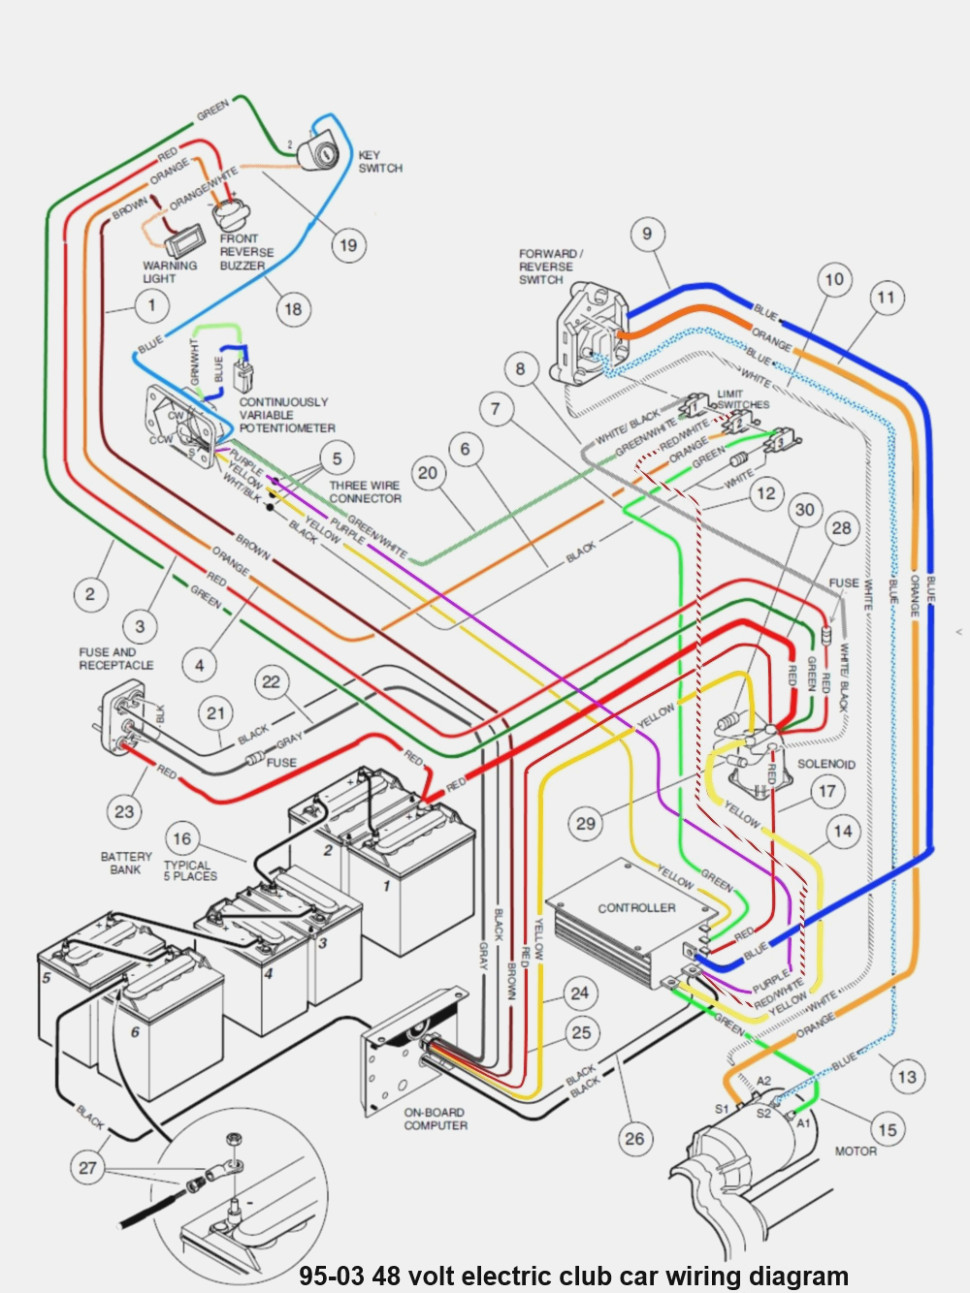 1991 Electric Club Car Wiring Diagram Schematic - Wiring Diagrams Hubs - Club Car Precedent Wiring Diagram